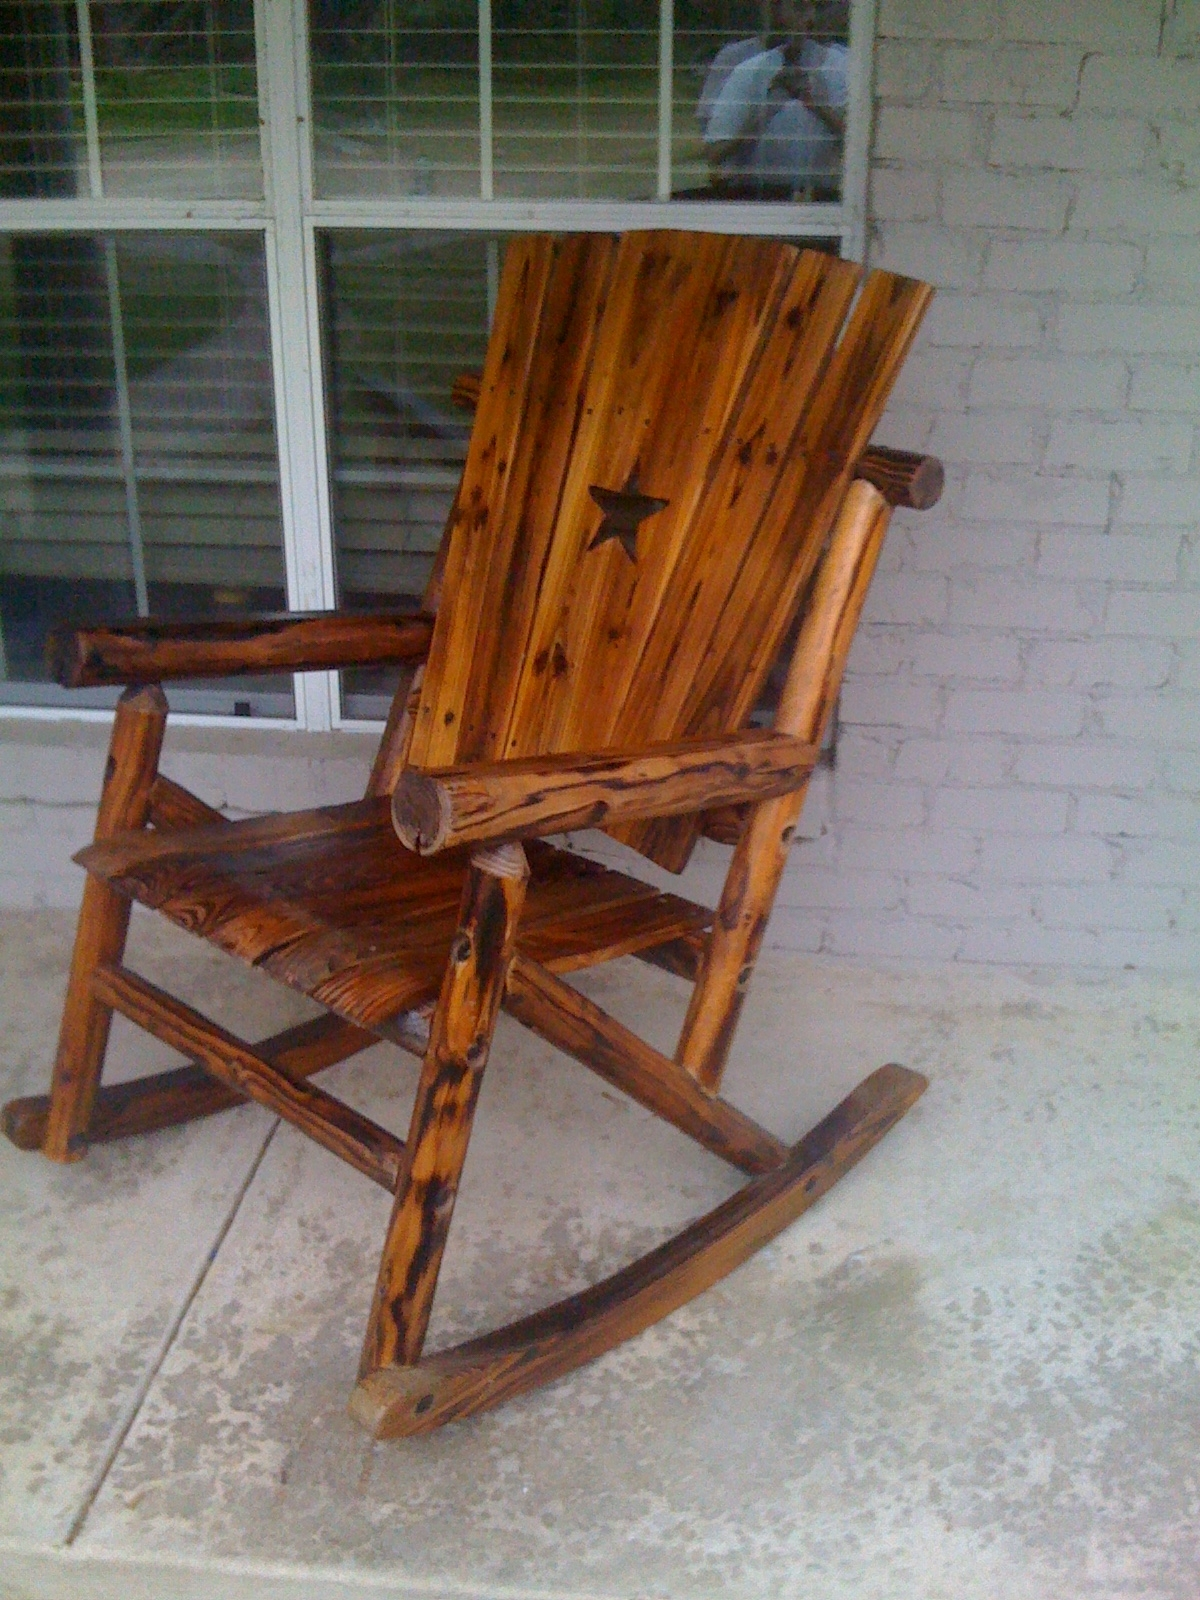 Outdoor Wooden Rocking Chairs Rustic : Pleasure Outdoor Wooden With Regard To Wooden Patio Rocking Chairs (View 3 of 15)